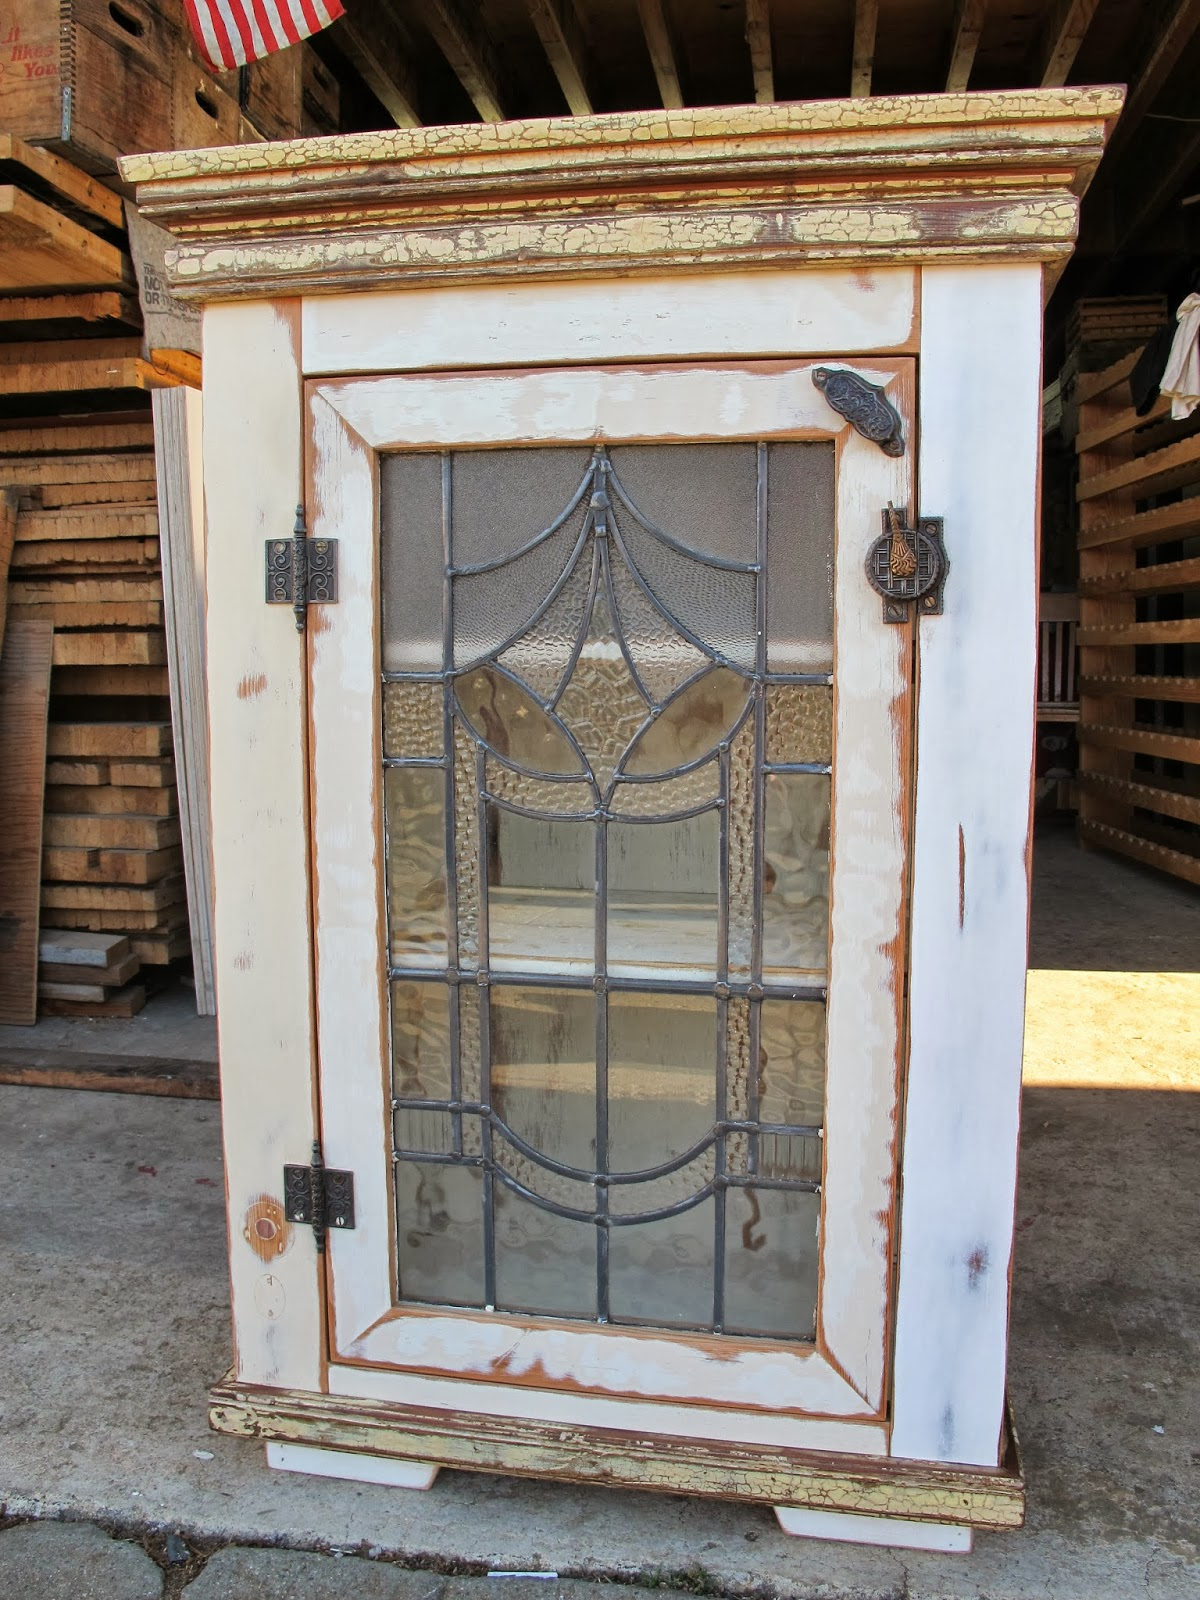 Bryan appleton designs september 2013 - Cabinet made from old doors ...